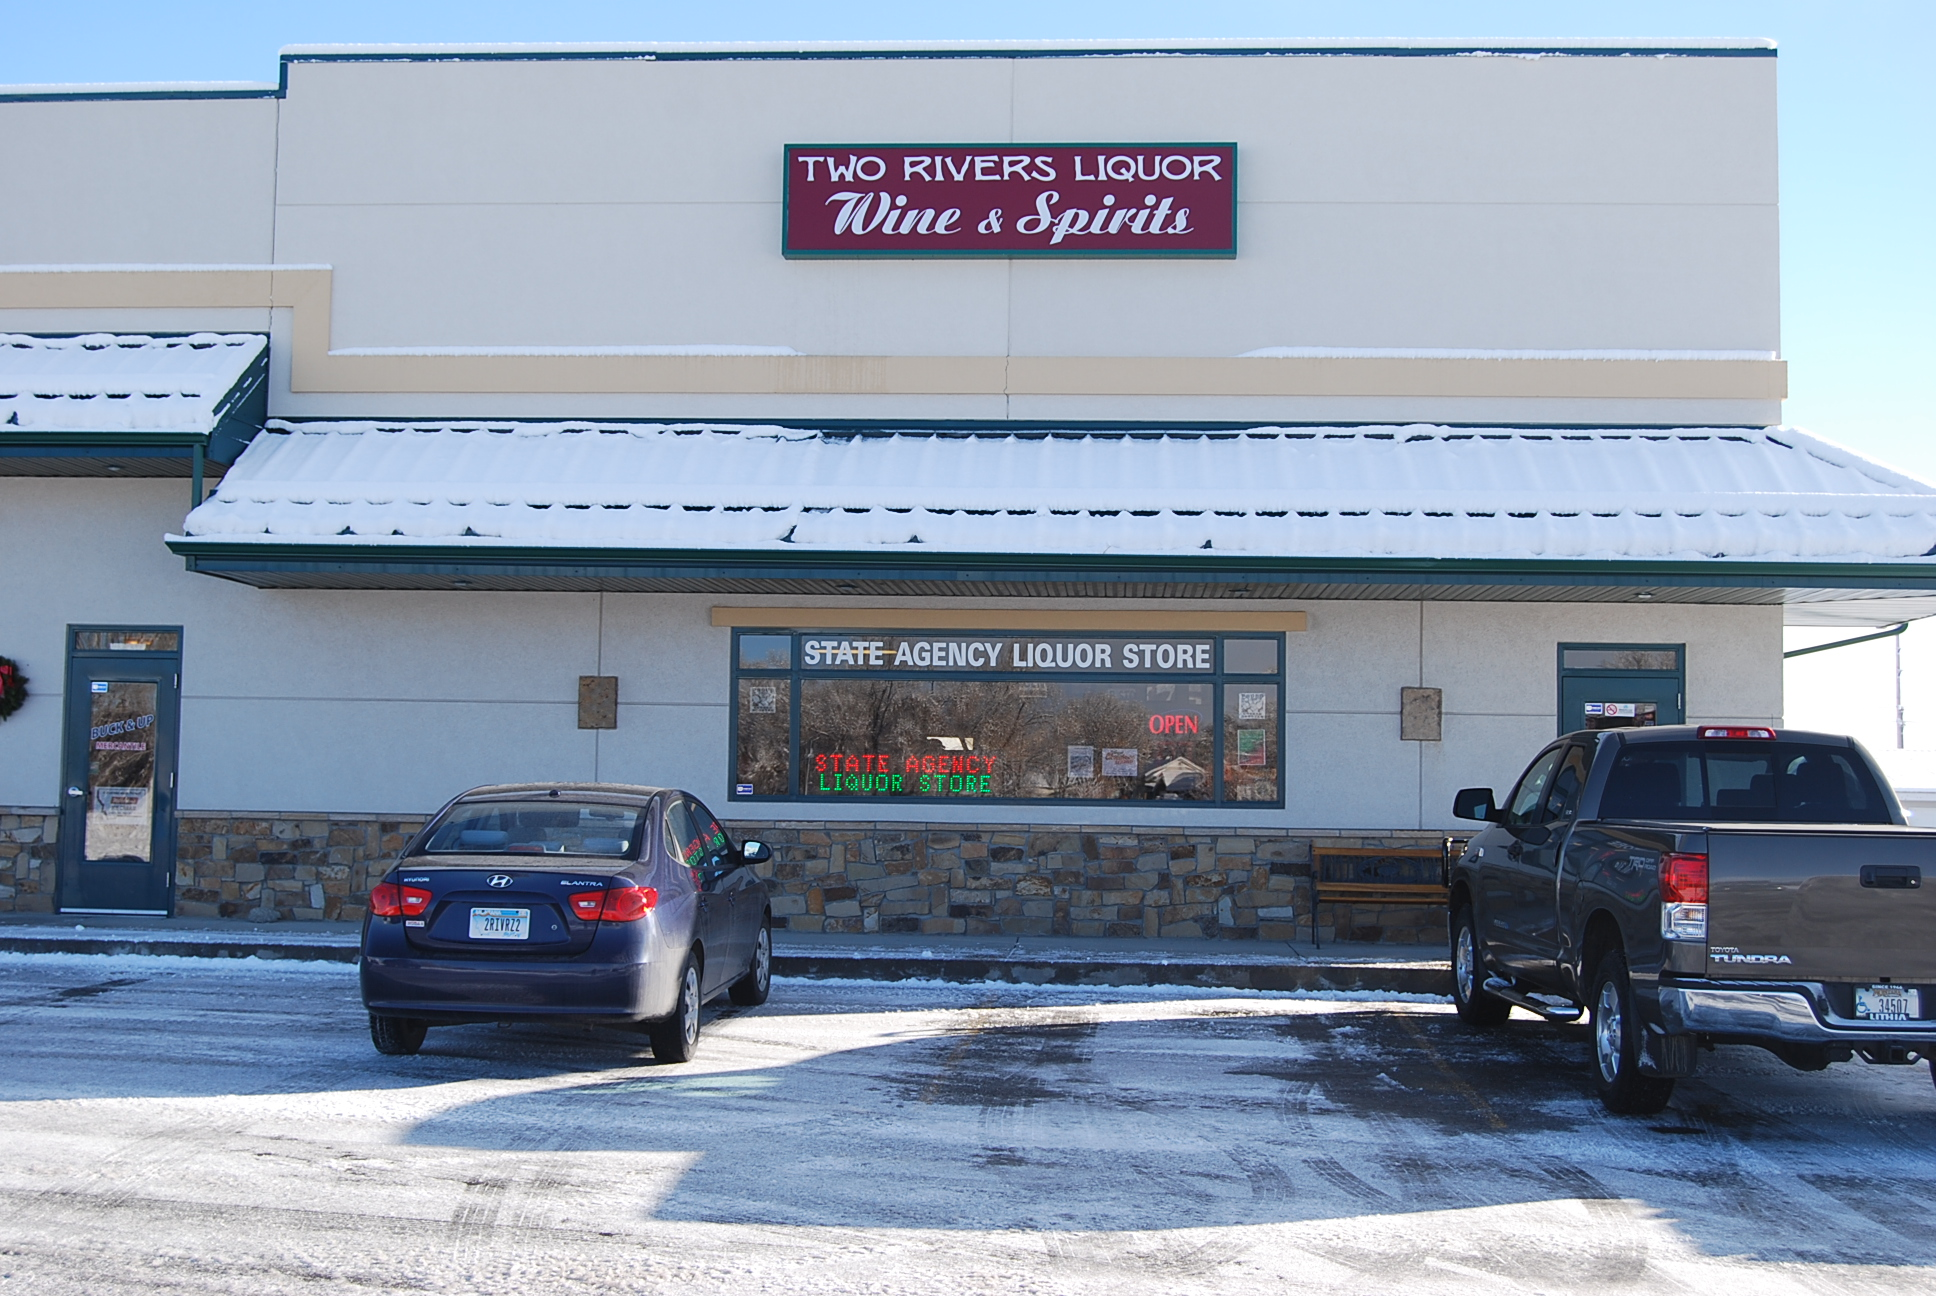 Two Rivers Liquor & Wine located in Columbus, Montana